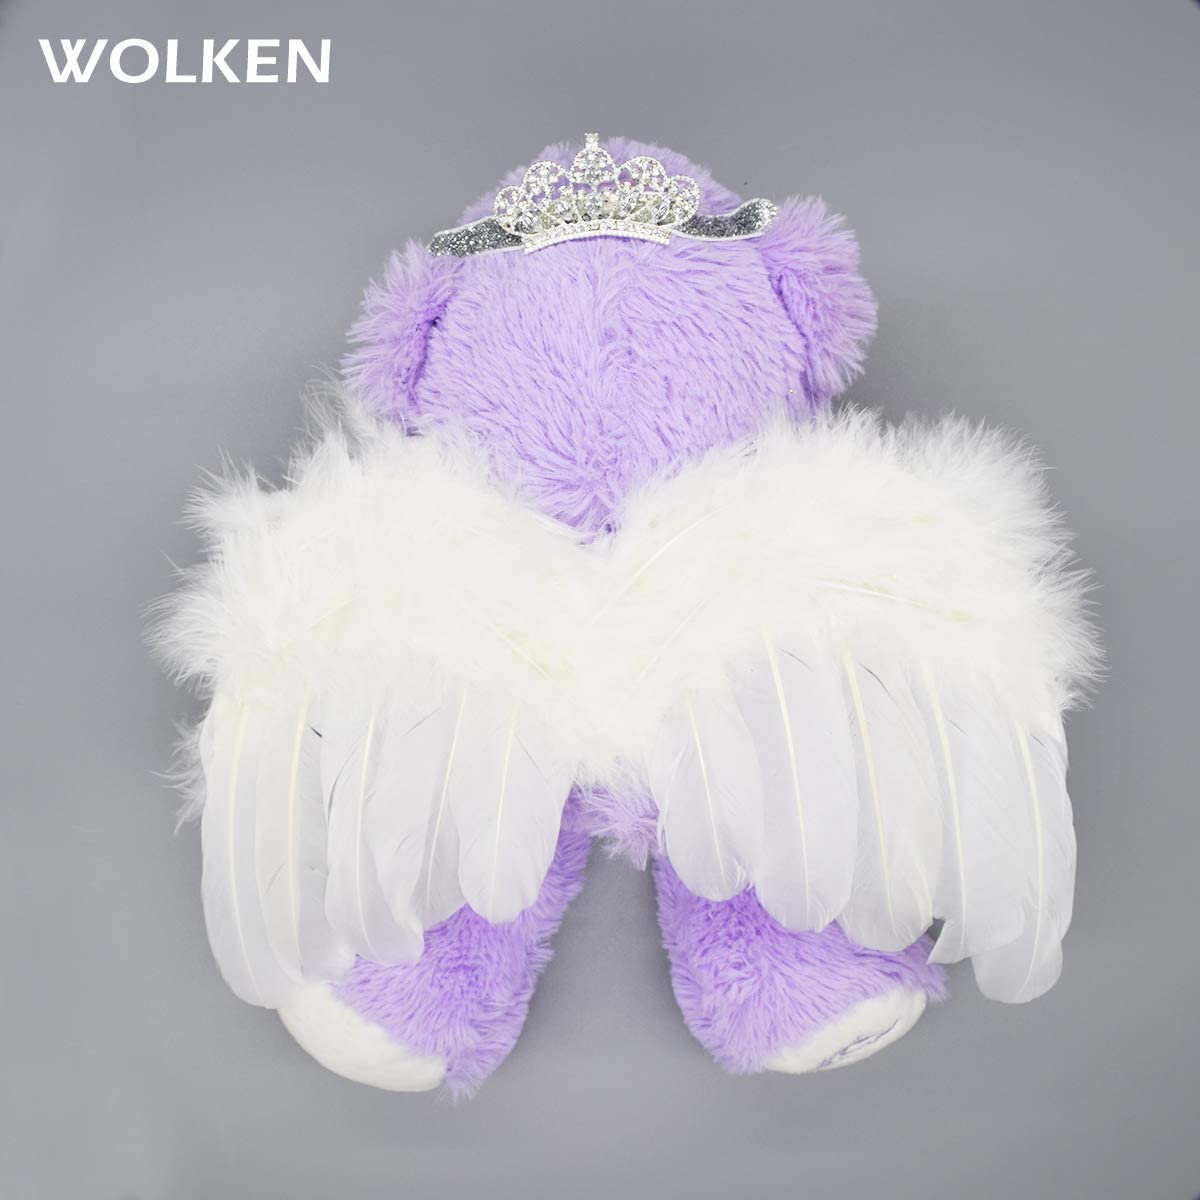 Newborn Baby Boys Girls Angel Feather Wing with Crown Headband Set Infant Photo Props Outfit Costume